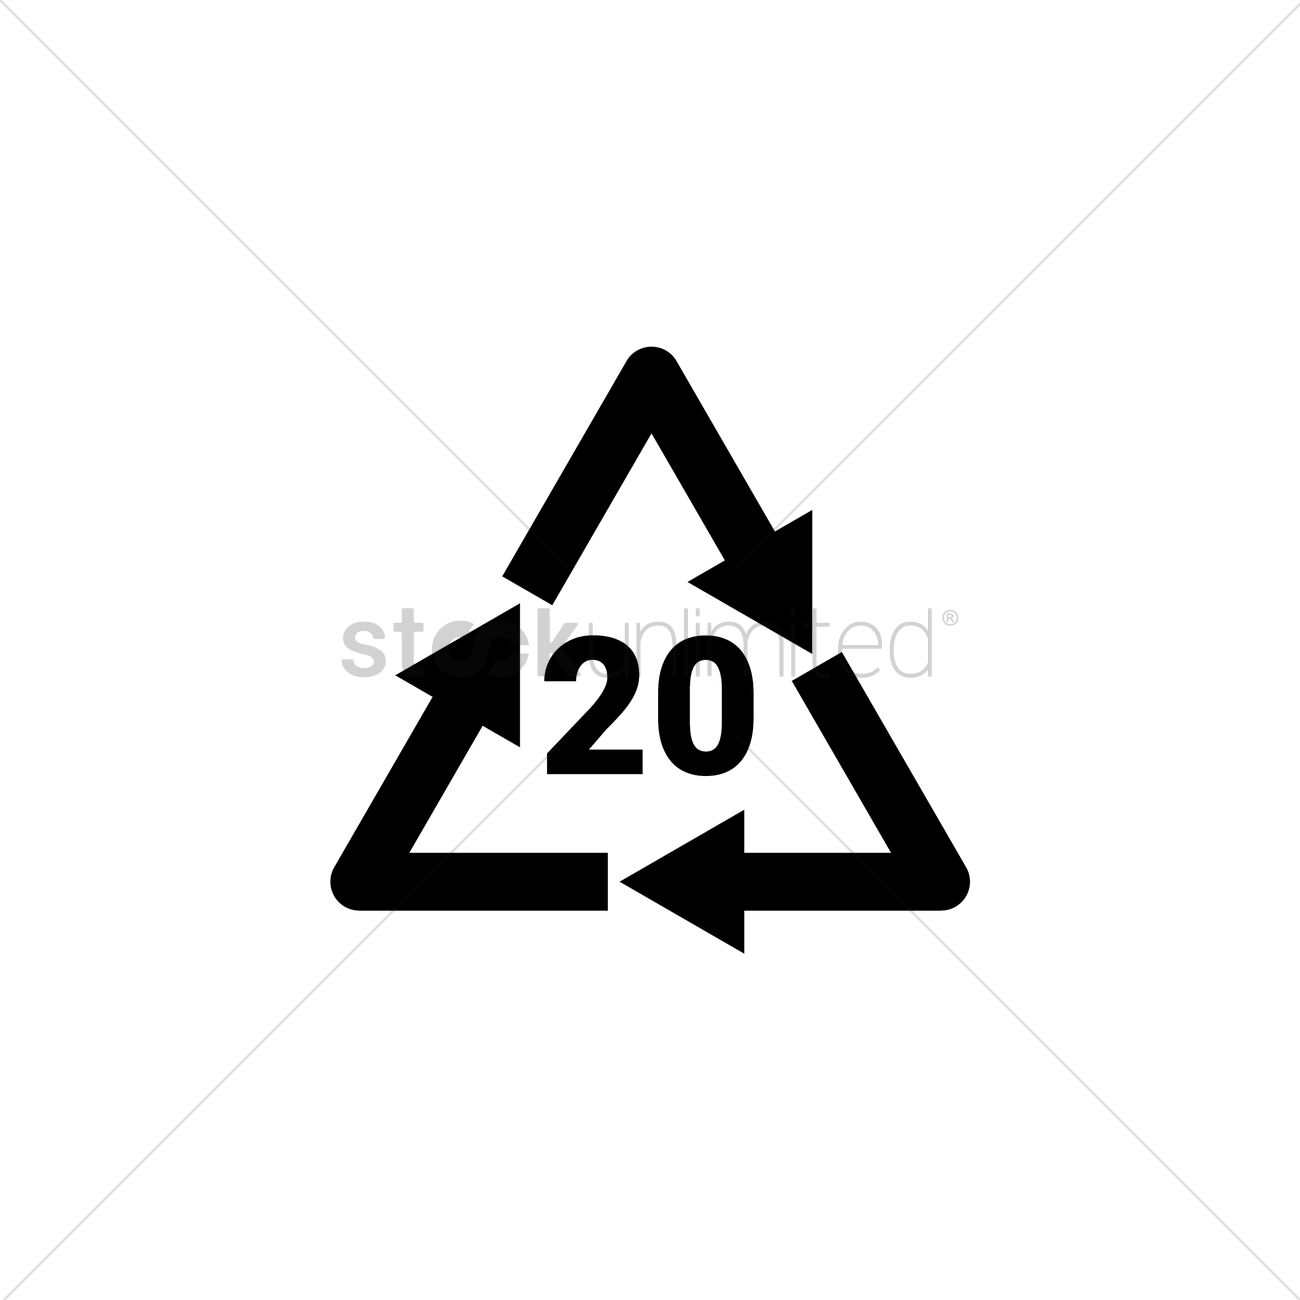 Recycling Code 20 Pap Vector Image 2026630 Stockunlimited